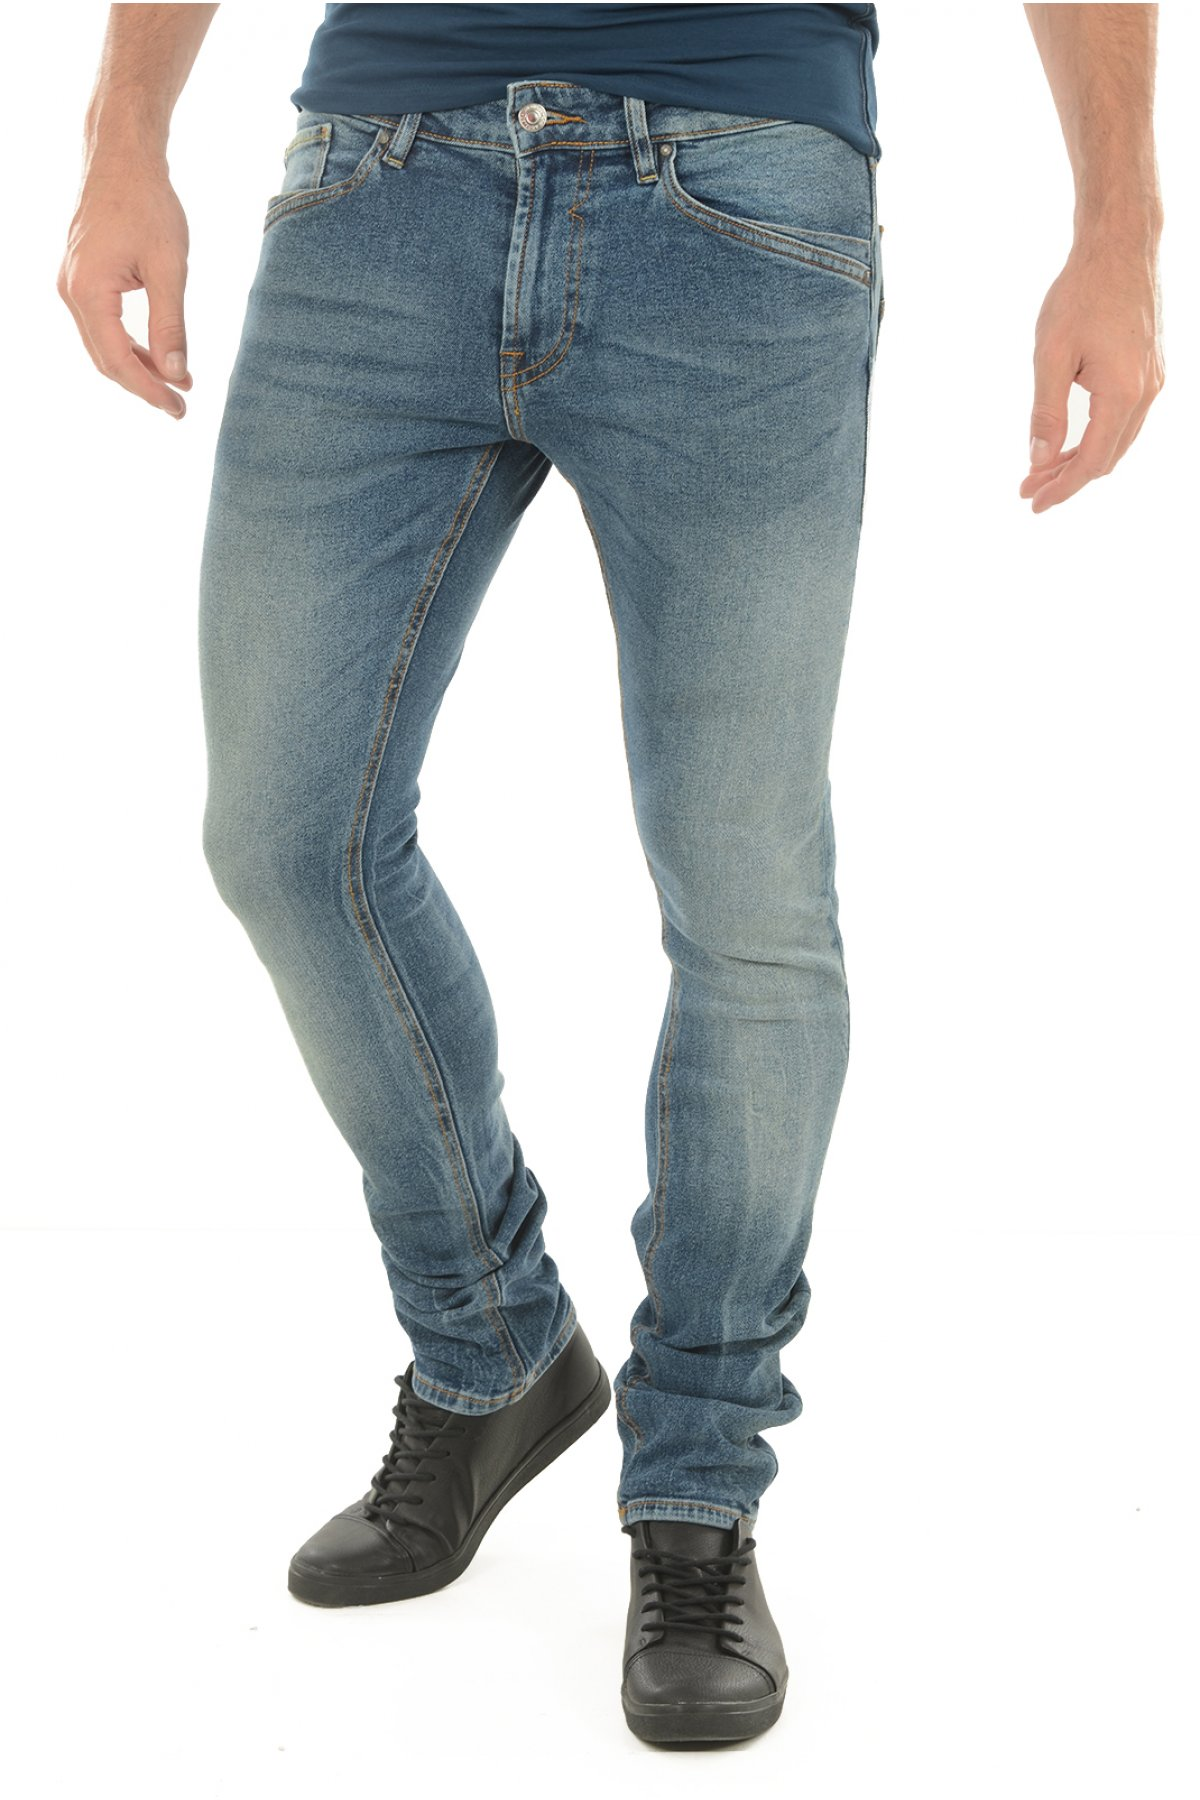 Jeans Jeans Homme 27,28,29